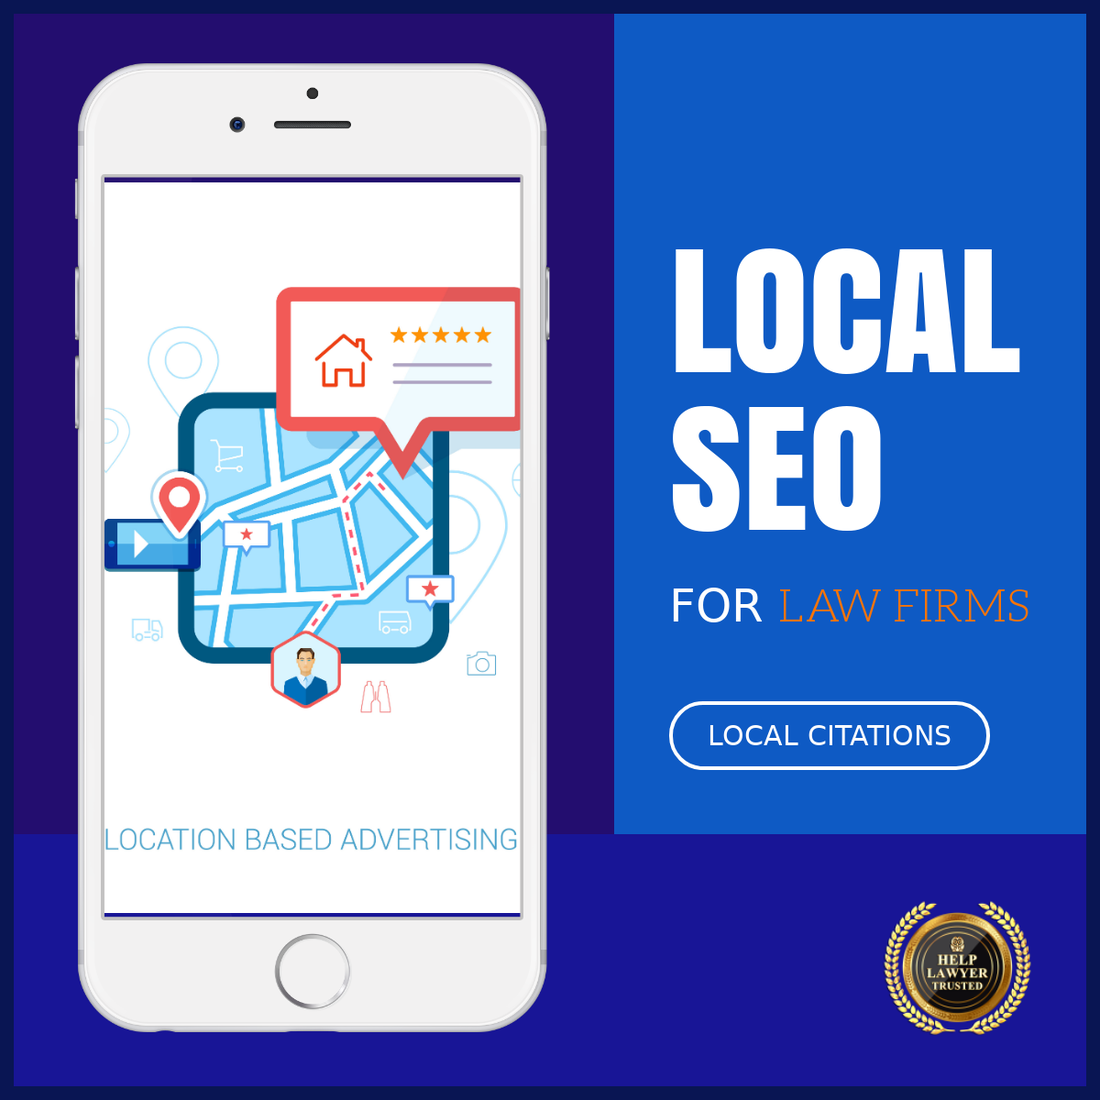 Local SEO For Law Firms, Building Your Local Citations